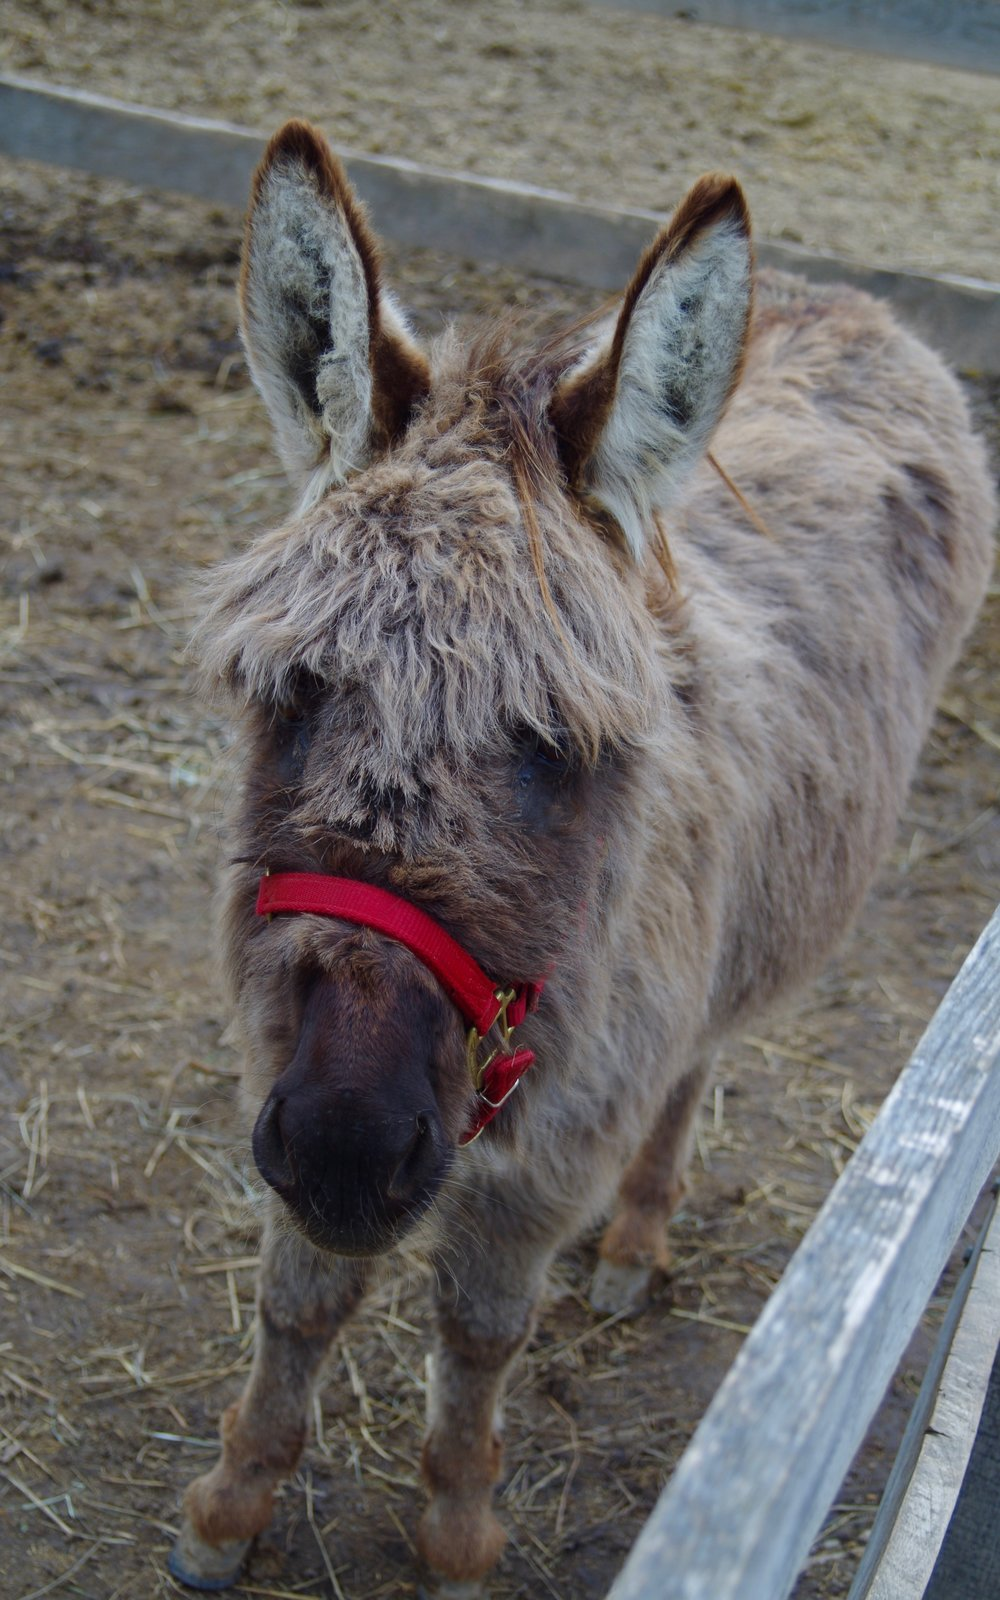 Rabbit - Seeking a sponsor!Breed: Minature DonkeyRabbit is the farm watchdog braying a greeting when you approach her paddock. She is an excellent addition to our ground therapy program and is a great ambassador in our outreach programs.